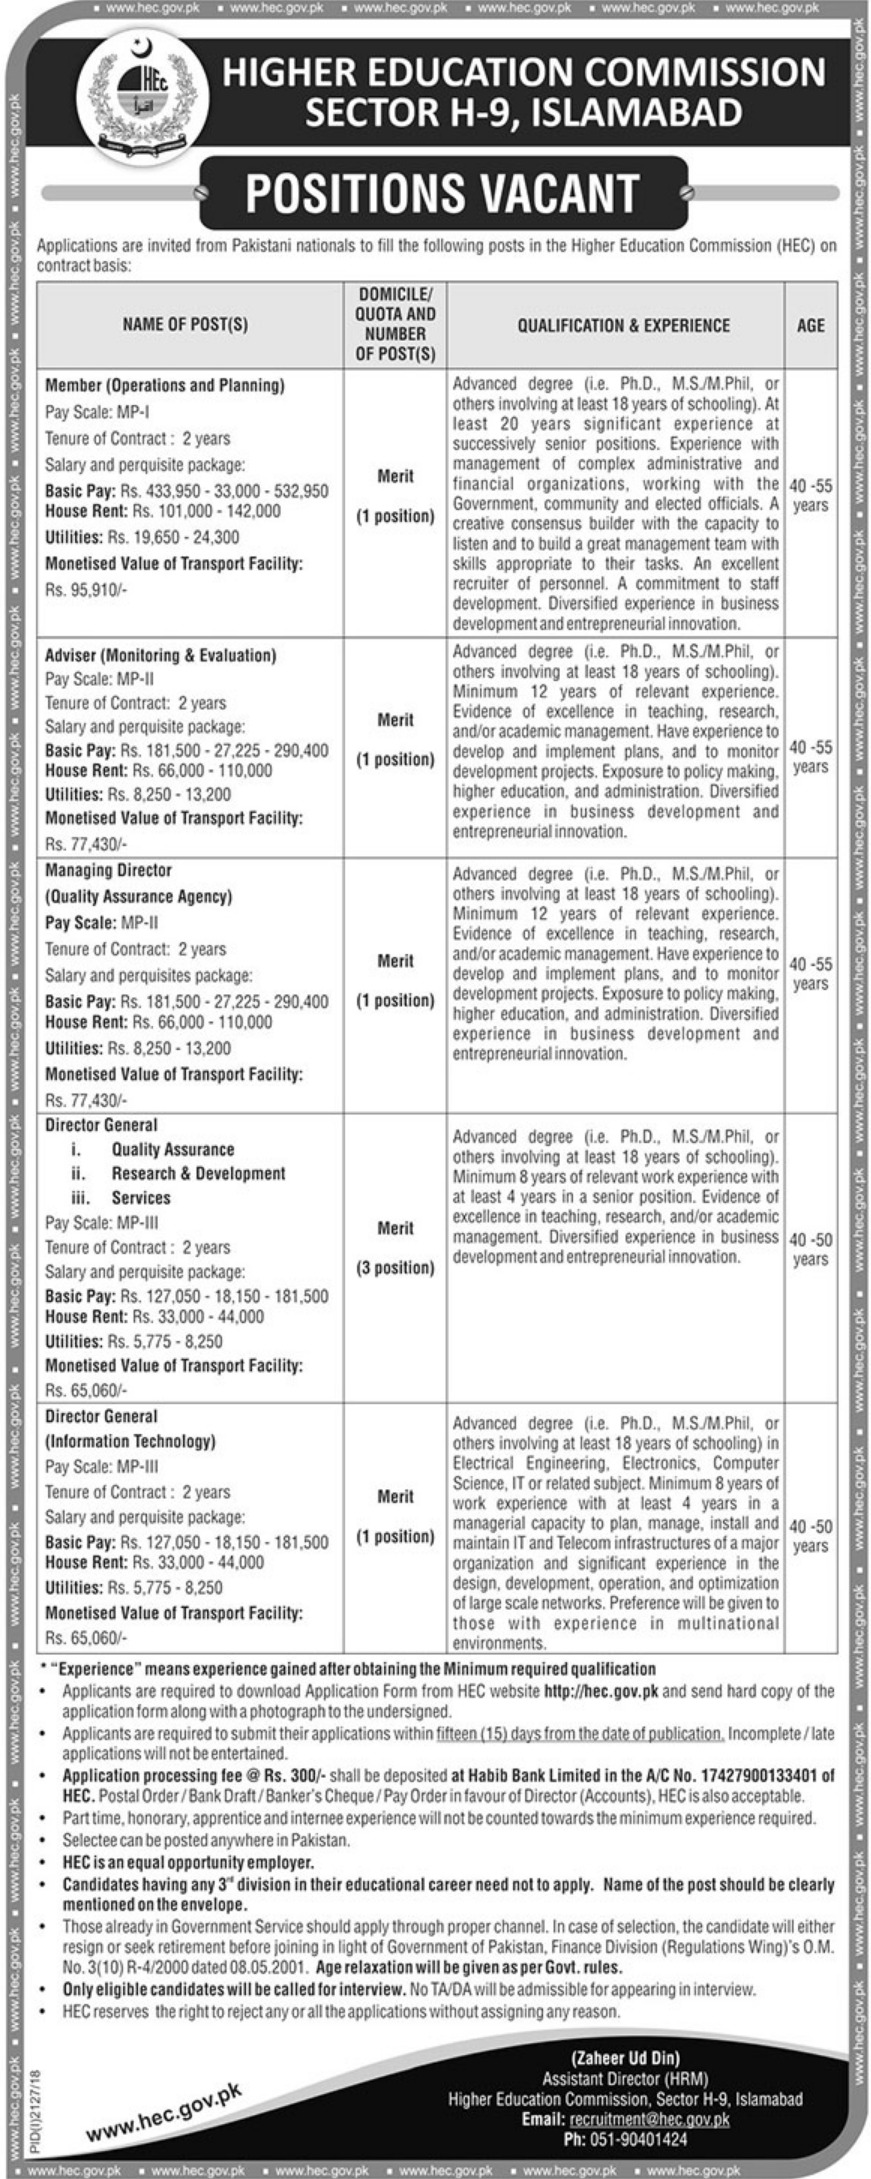 Higher Education Commission Islamabad Jobs 2018